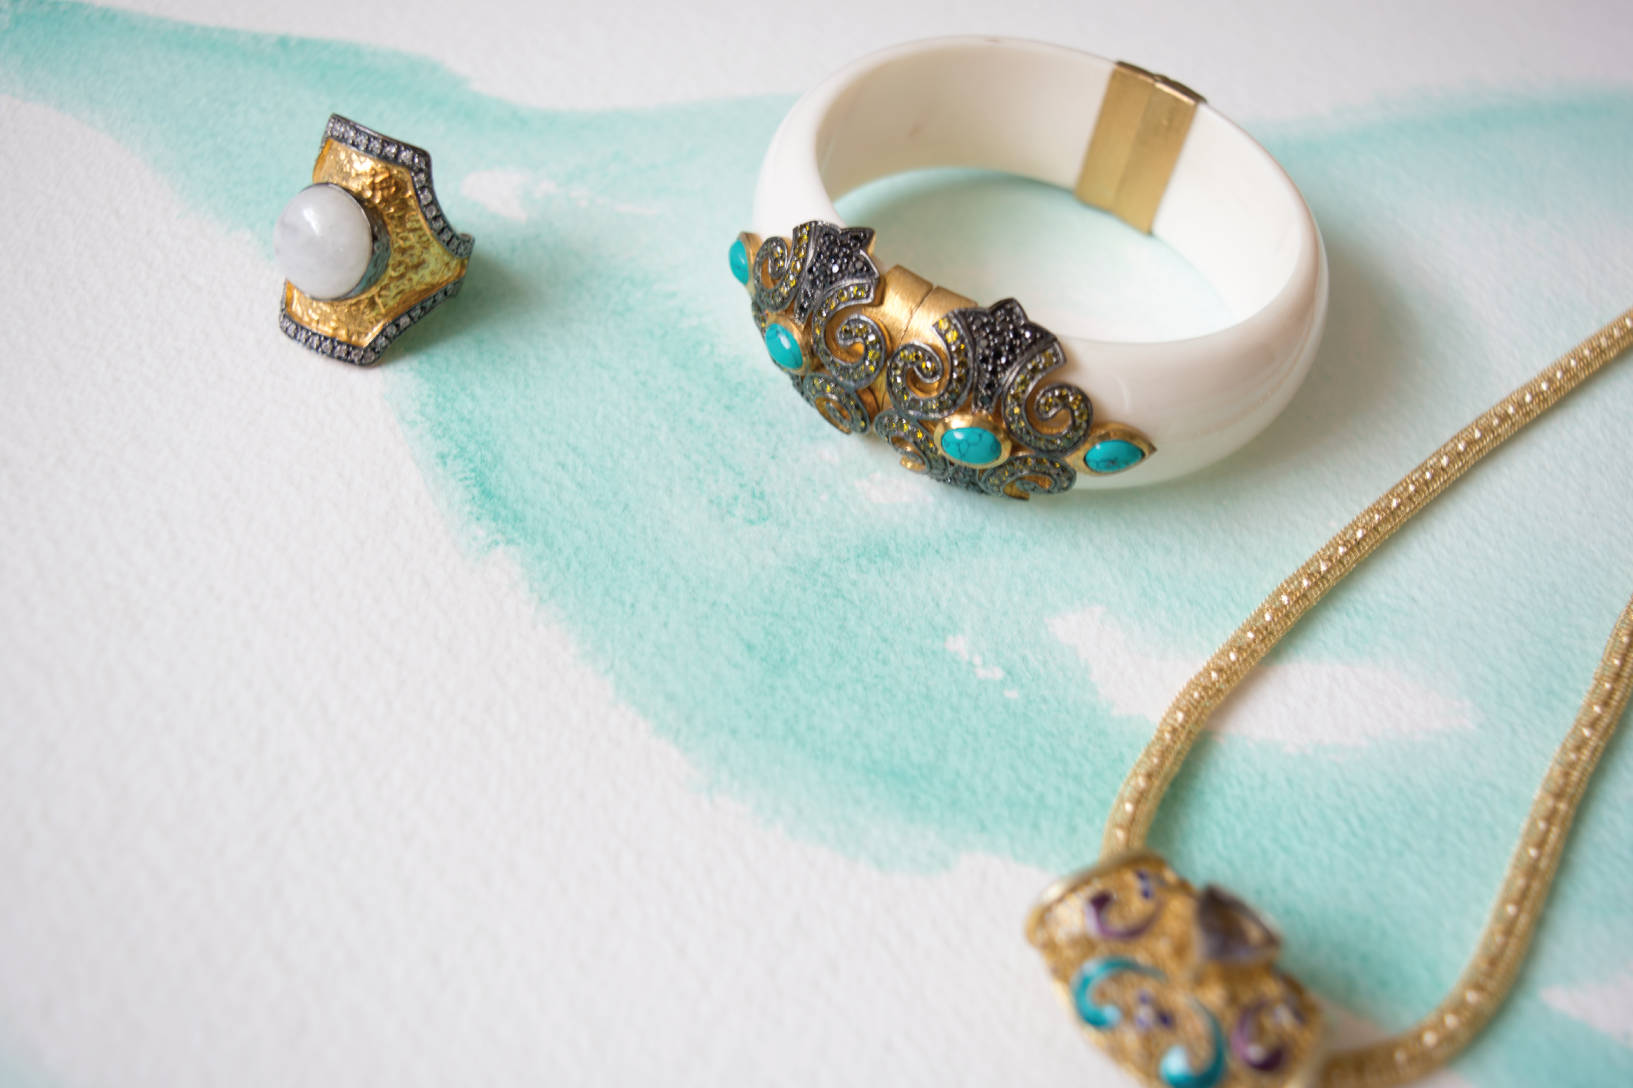 Wearable art from Jewels of Jaipur.